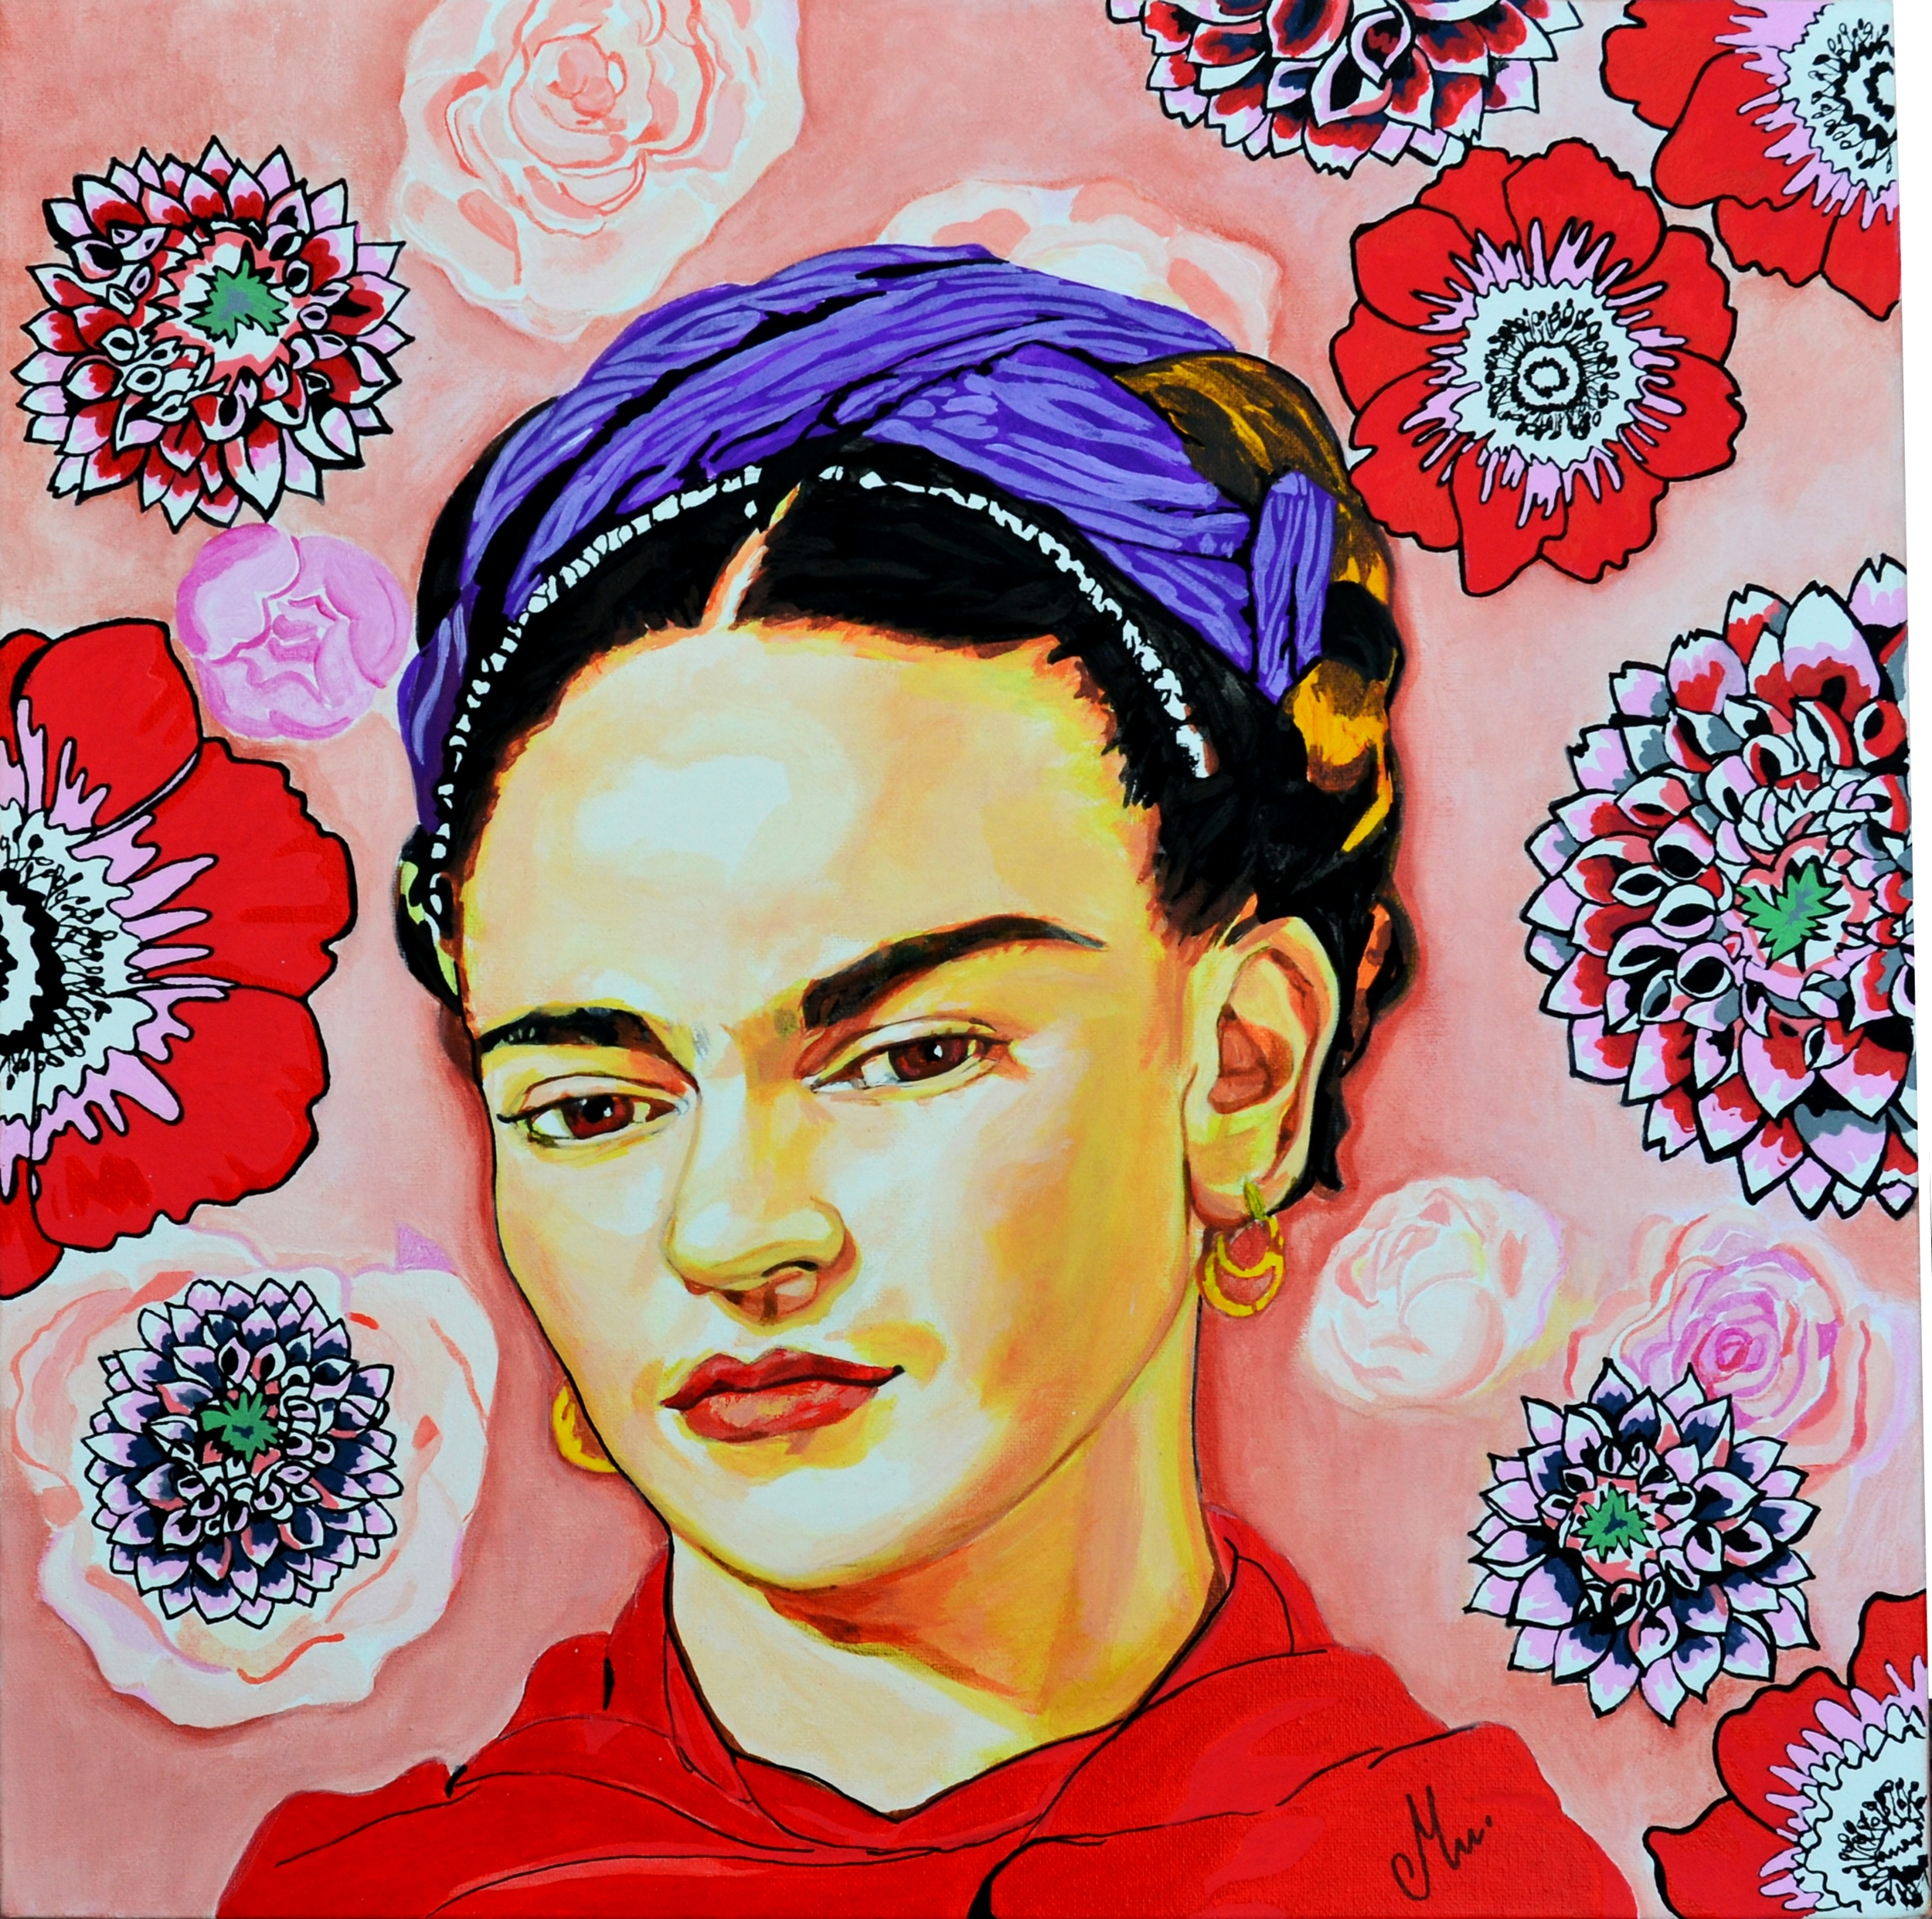 reproduction sur toile portrait frida kahlo affiches reproduction impression sur toile decoroots. Black Bedroom Furniture Sets. Home Design Ideas